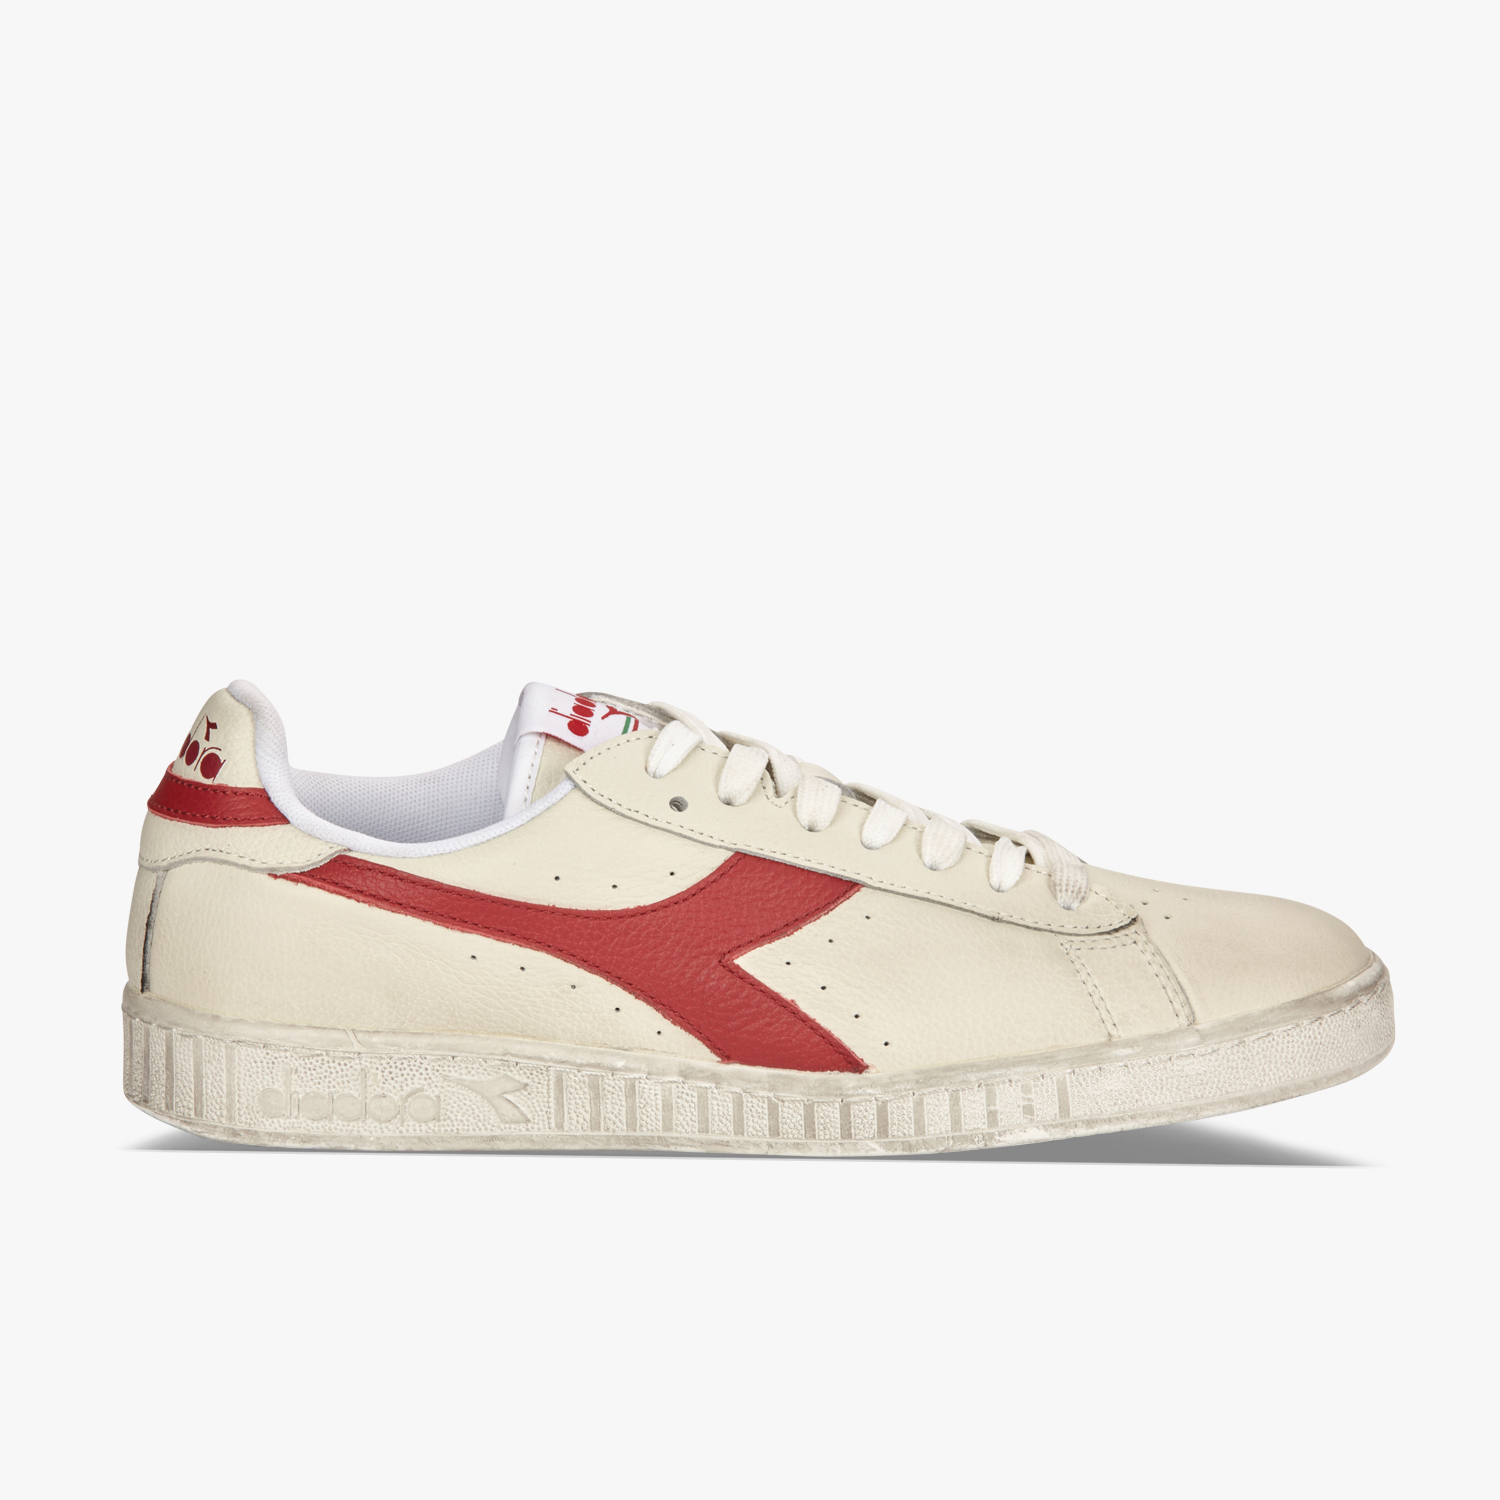 925fccdcf08 Diadora Sportswear GAME L LOW WAXED - Diadora Online Shop US